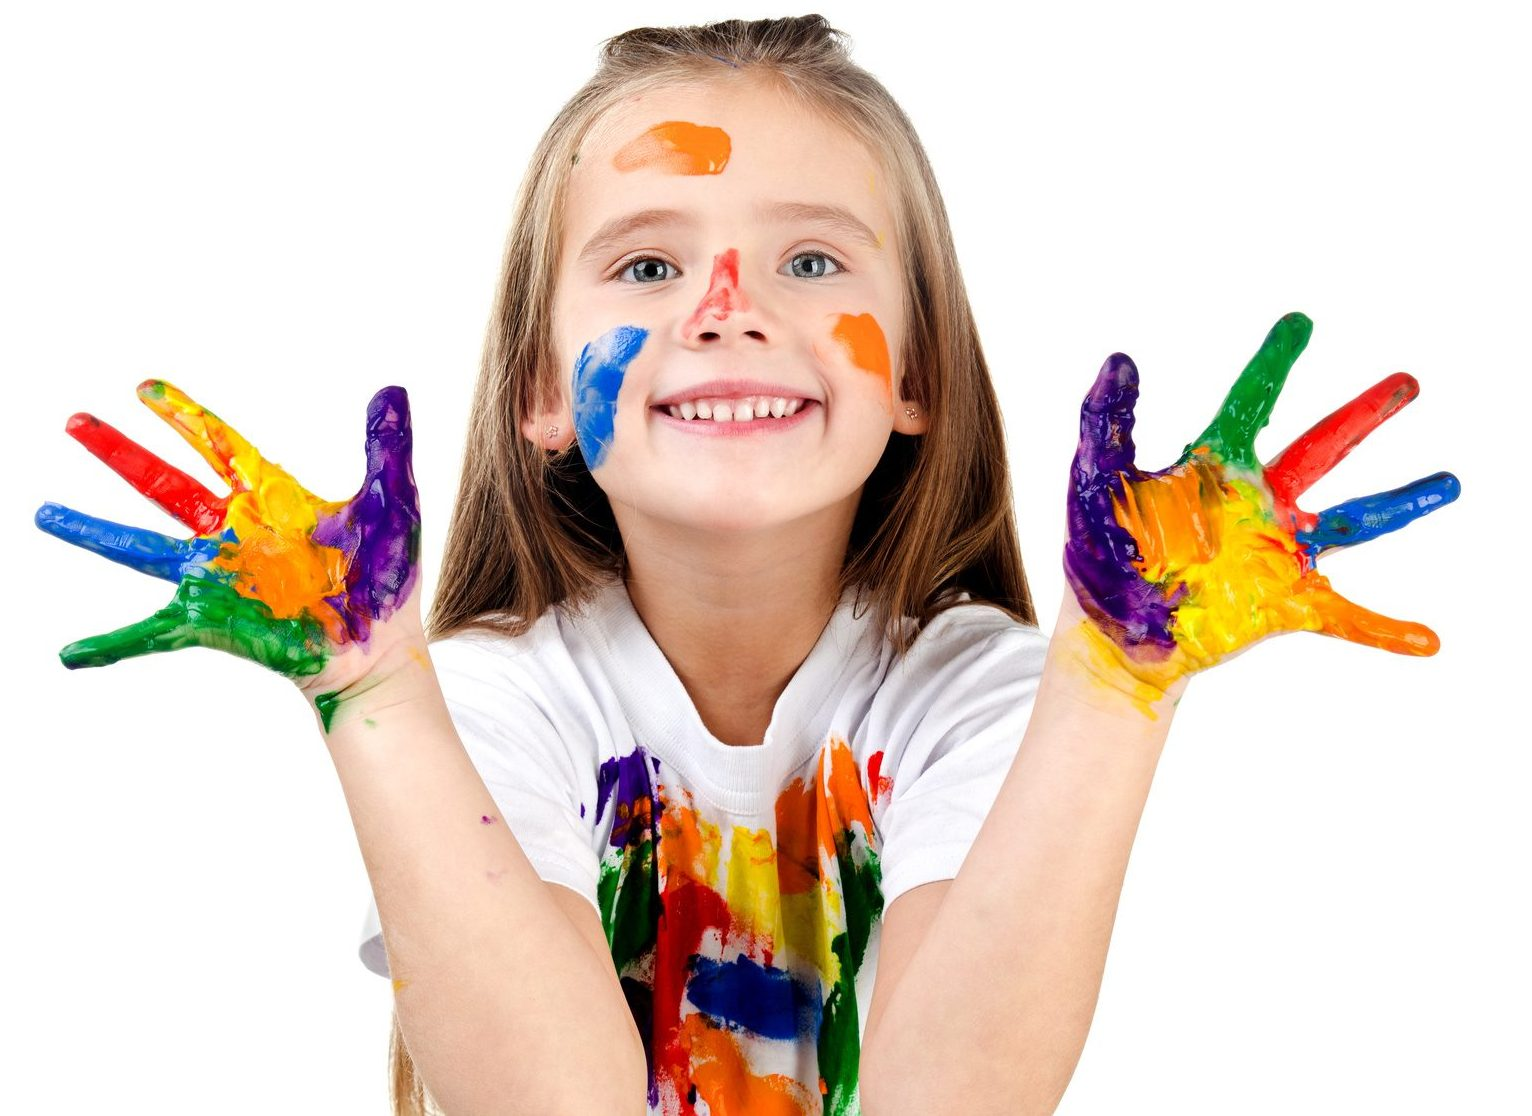 Girl with paint on hands, face and tshirt